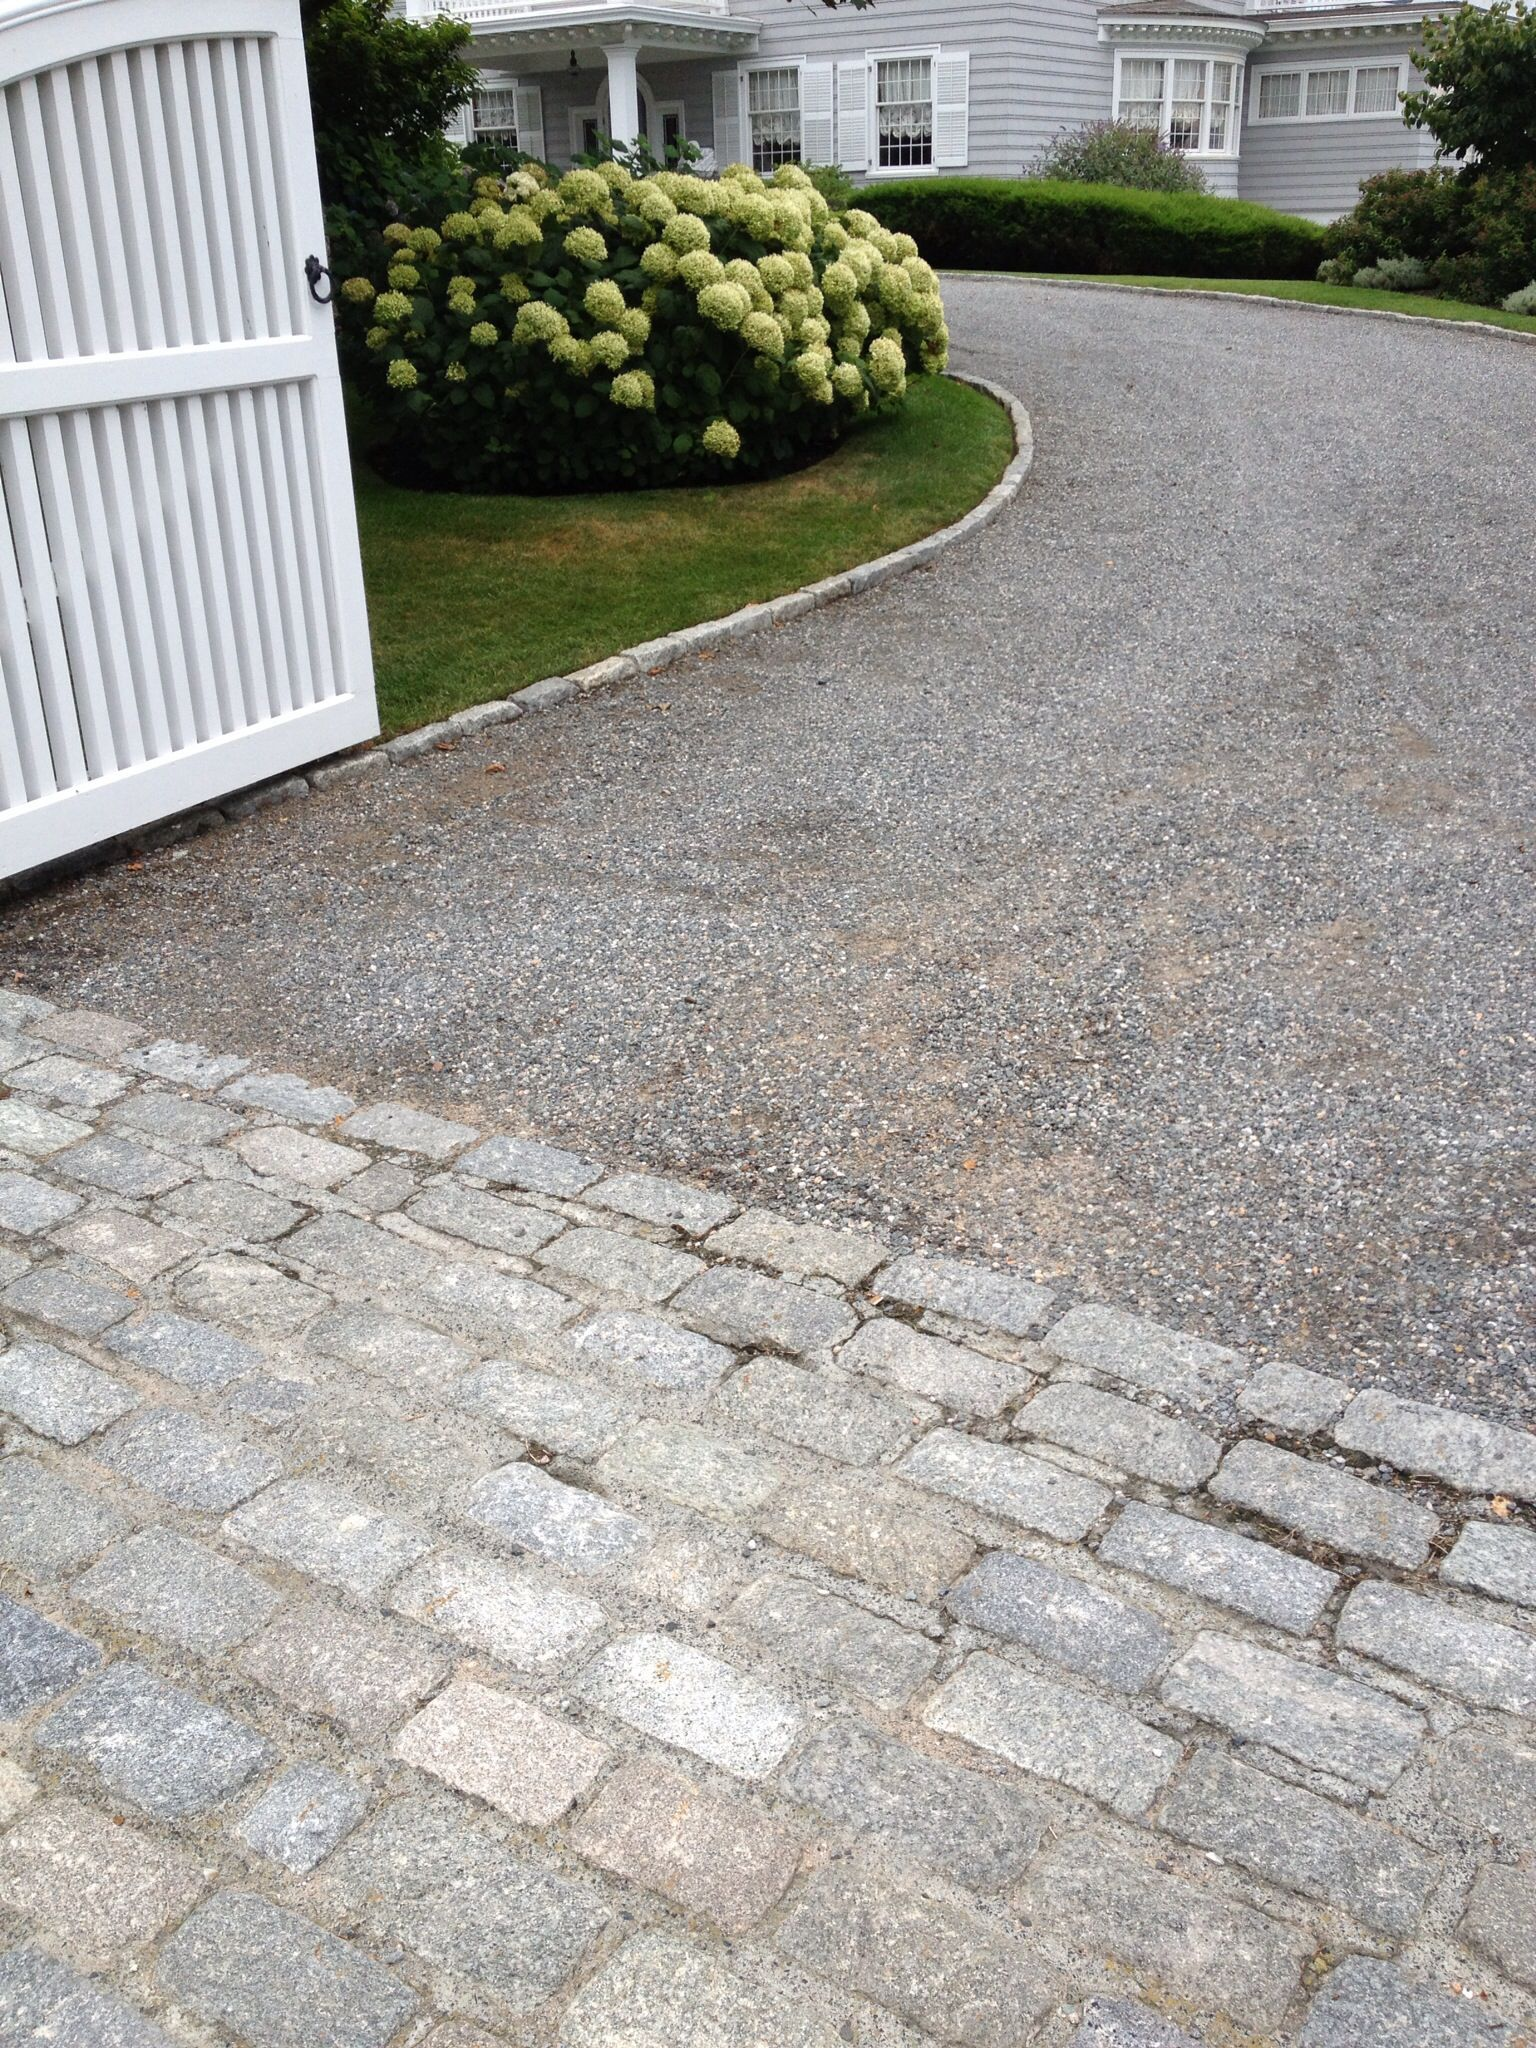 Image Result For Belgian Block Apron Gravel Driveway Driveway Landscaping Stone Driveway